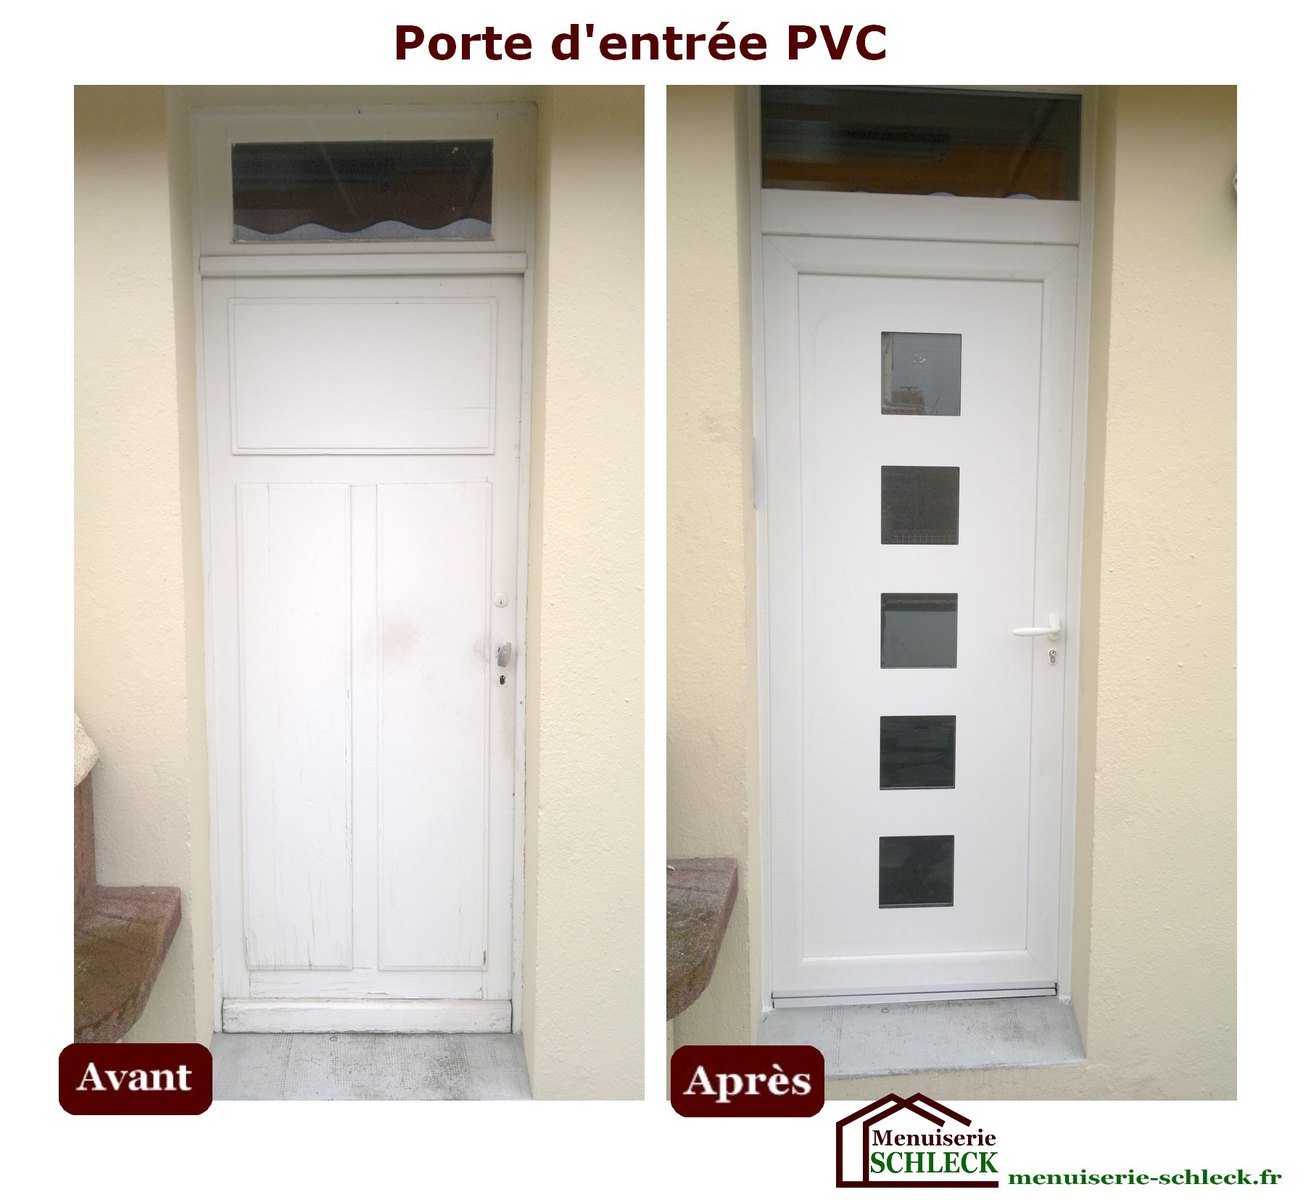 Comment poser une porte d 39 entr e en r novation la for Pose d une fenetre pvc en renovation